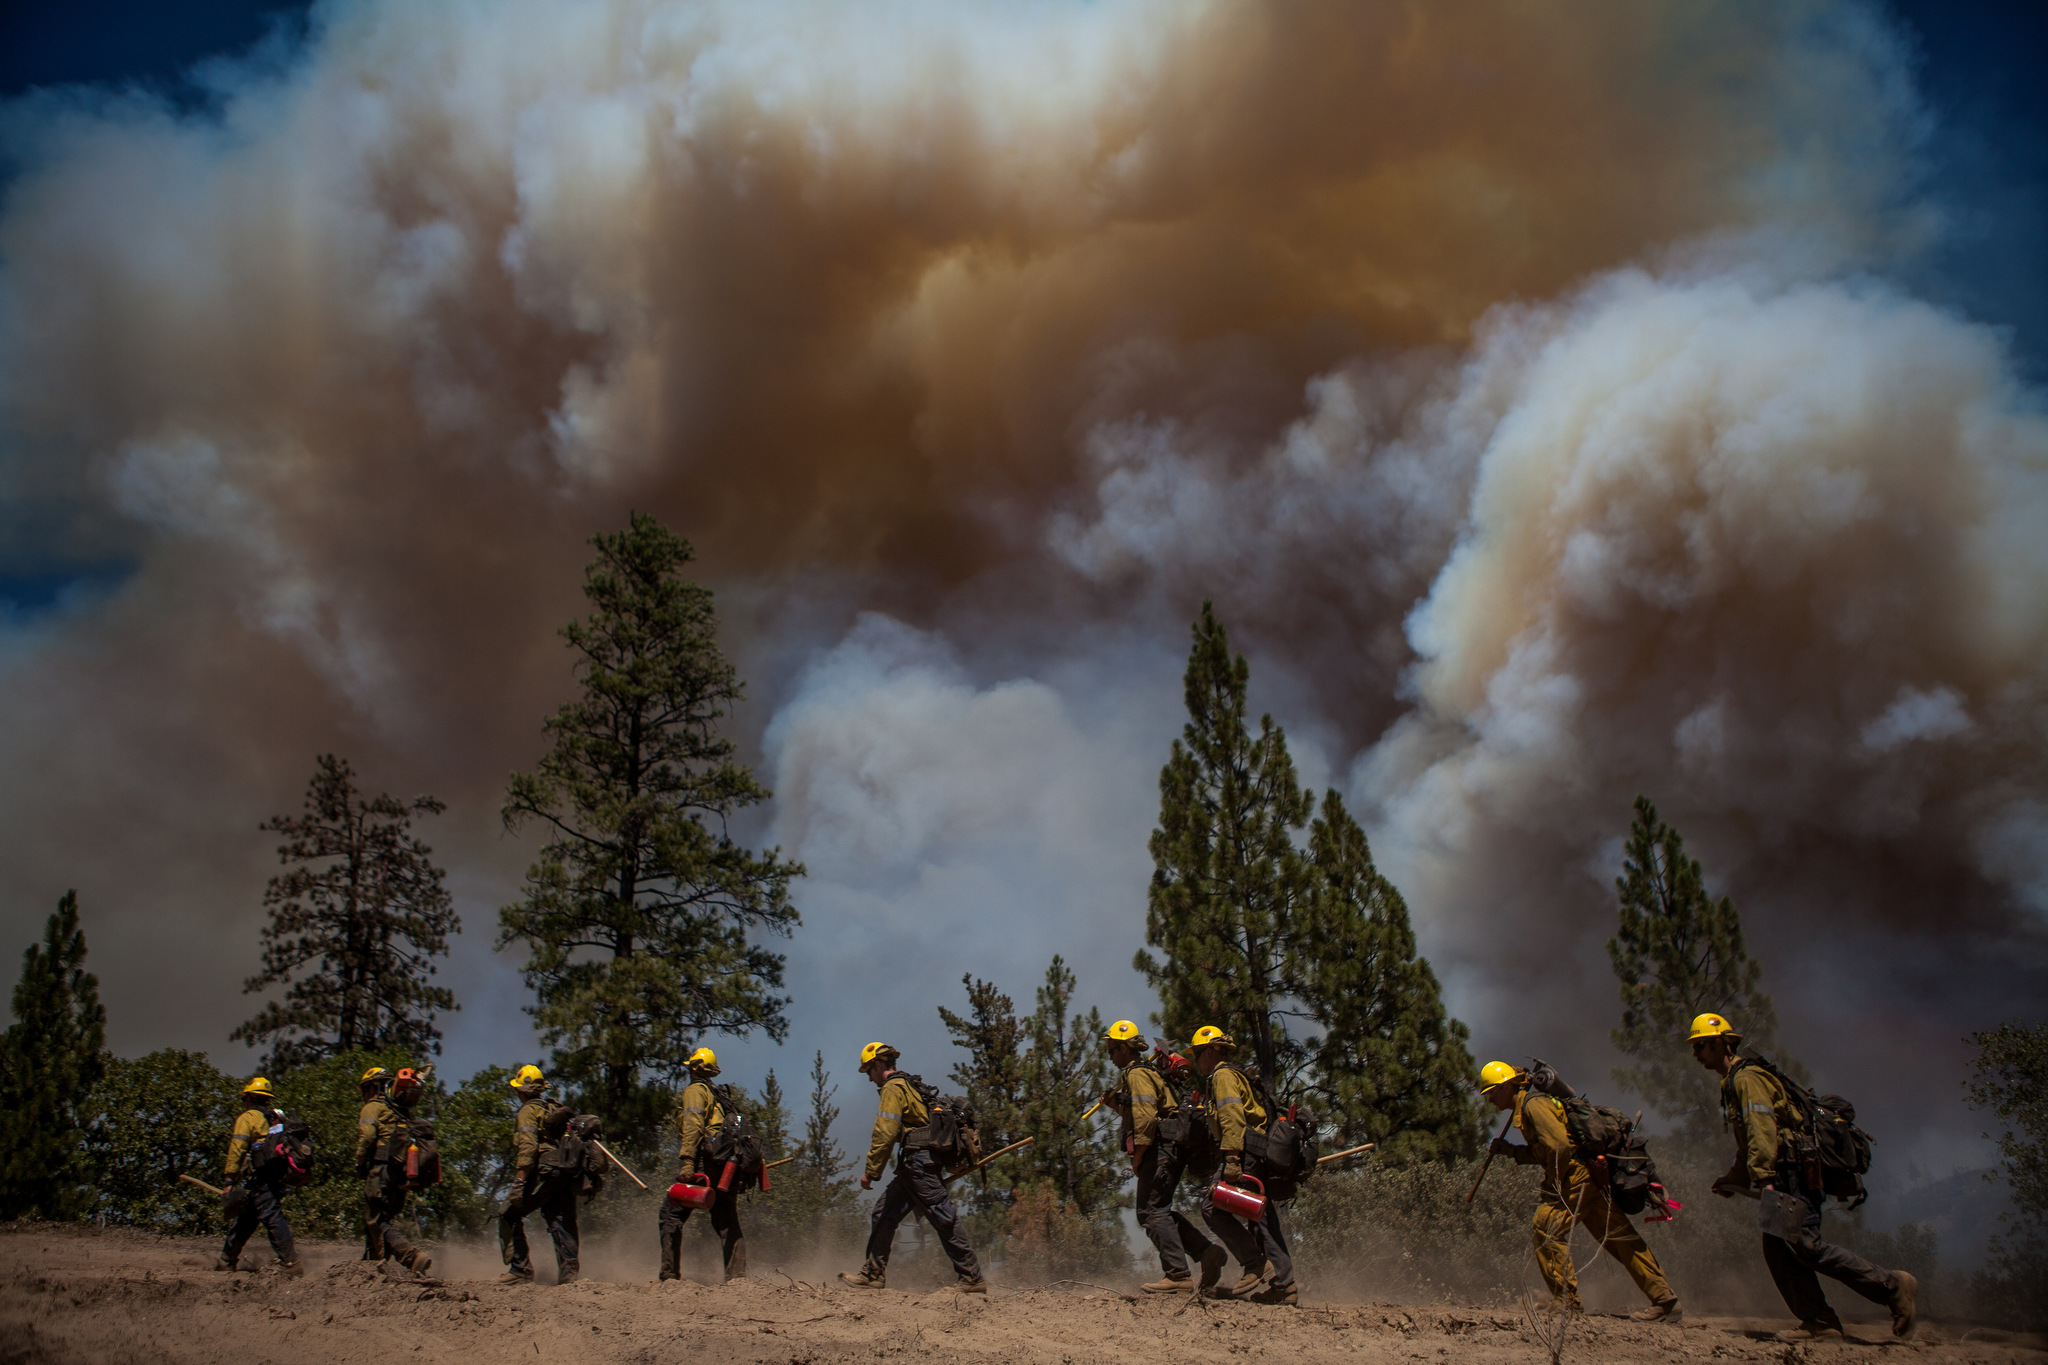 Los Angeles County firefighters hike in on a fire line on the Rim Fire near Groveland, California, August 22, 2013. The Rim Fire burned 257,314 acres and is the third largest wildfire in California history.